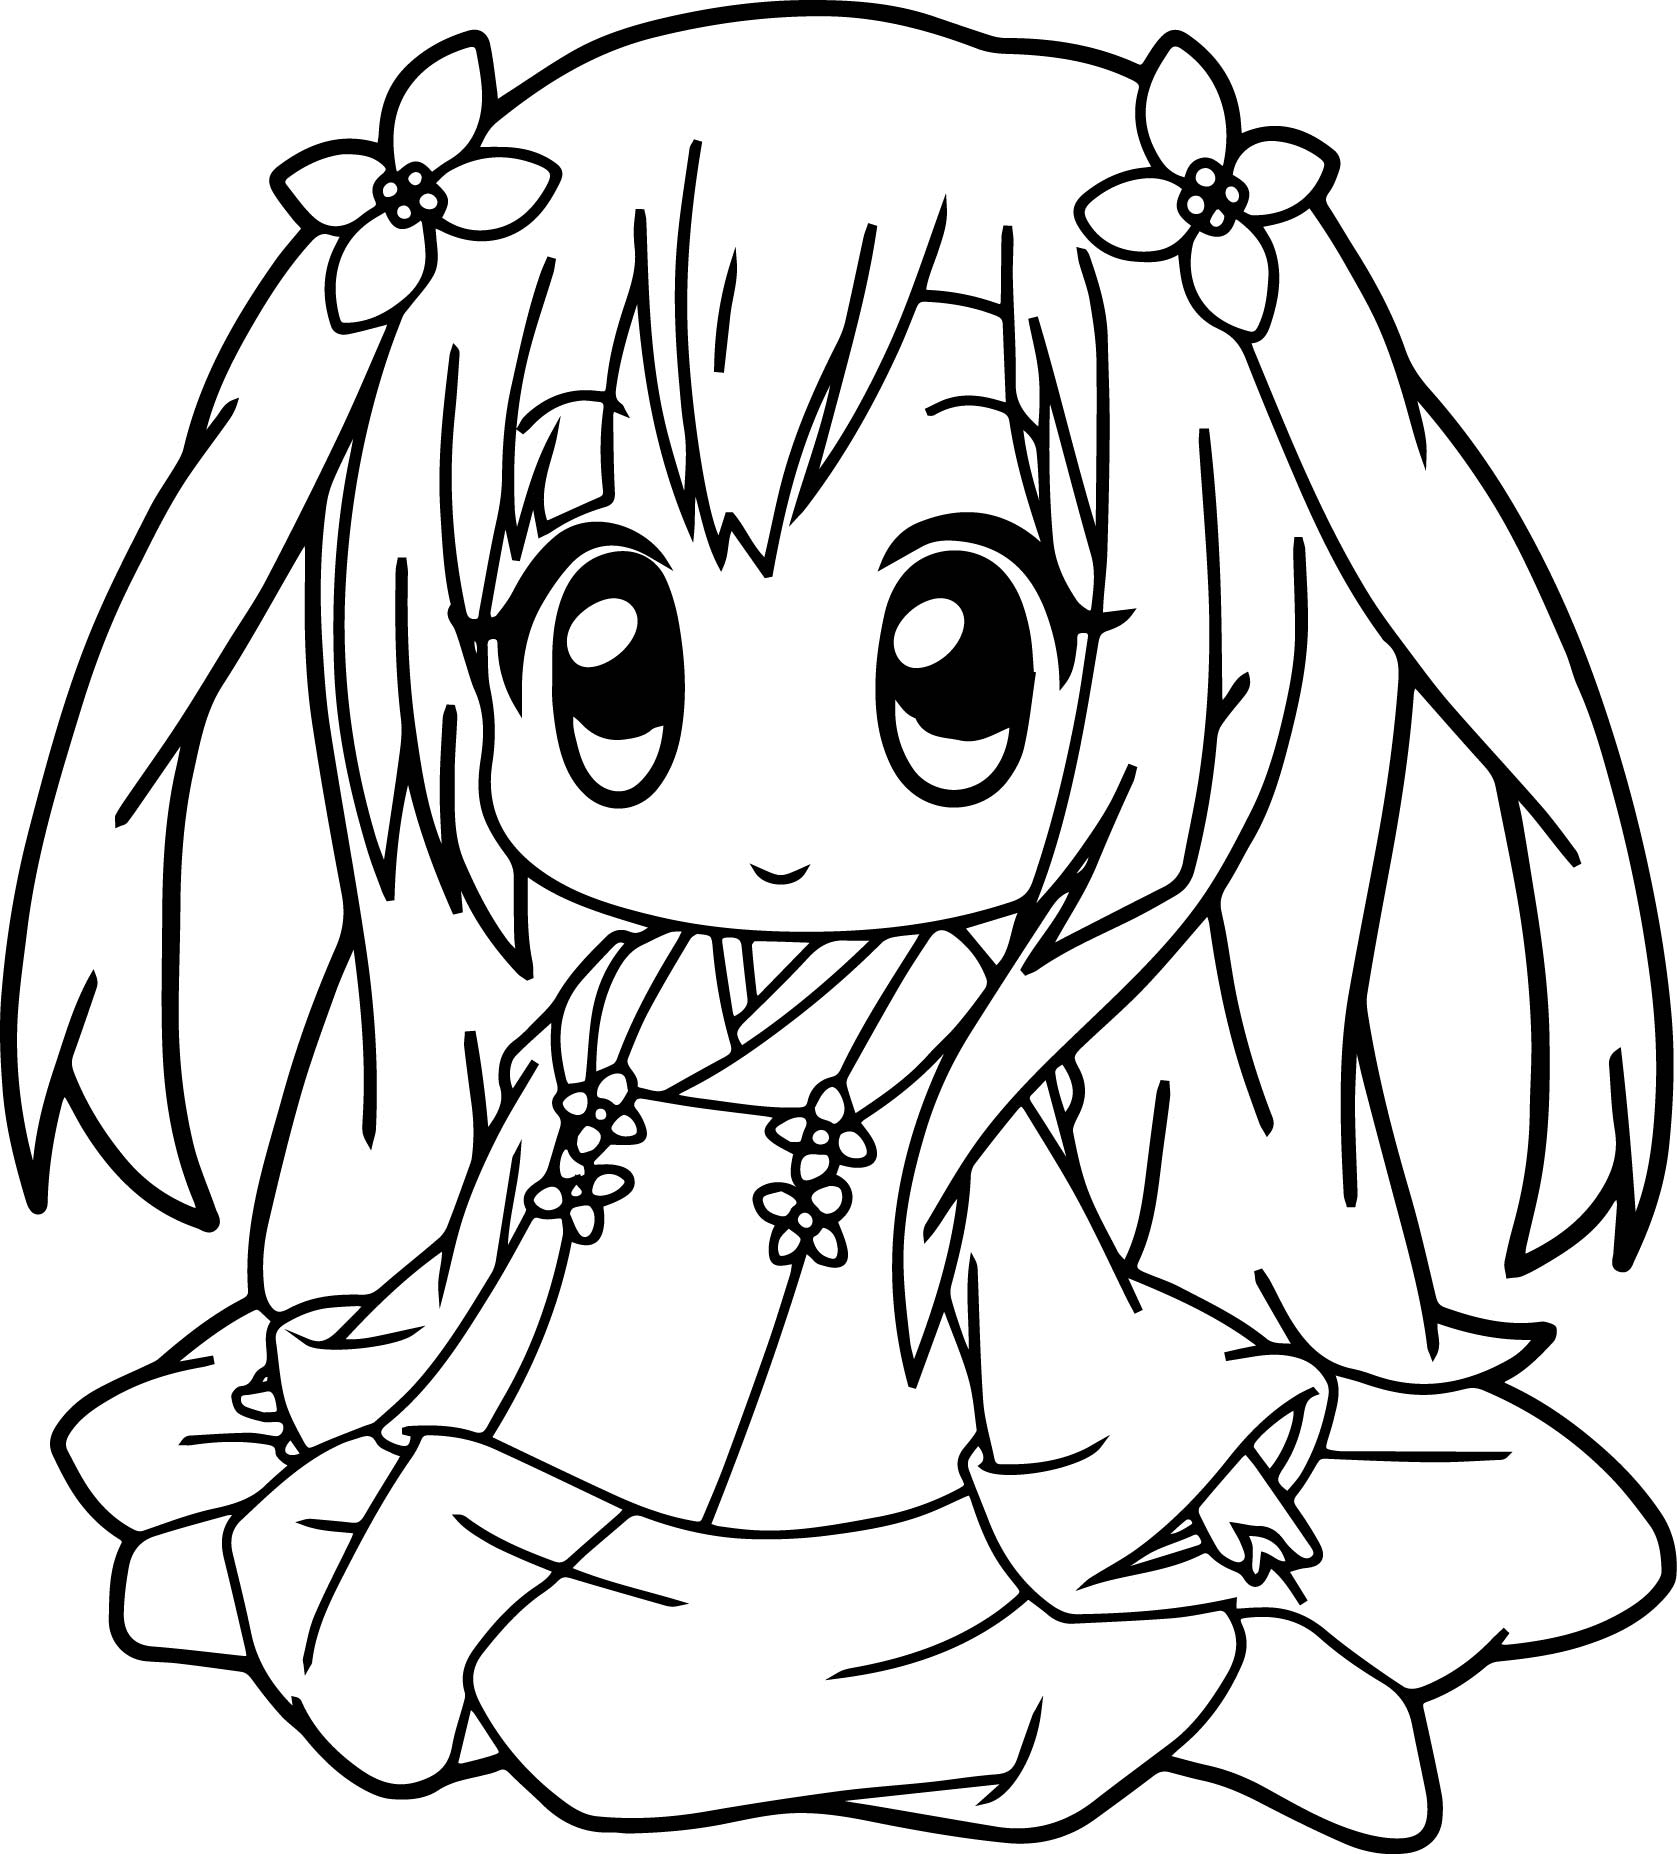 very cute anime girl coloring page - Girl Anime Coloring Pages